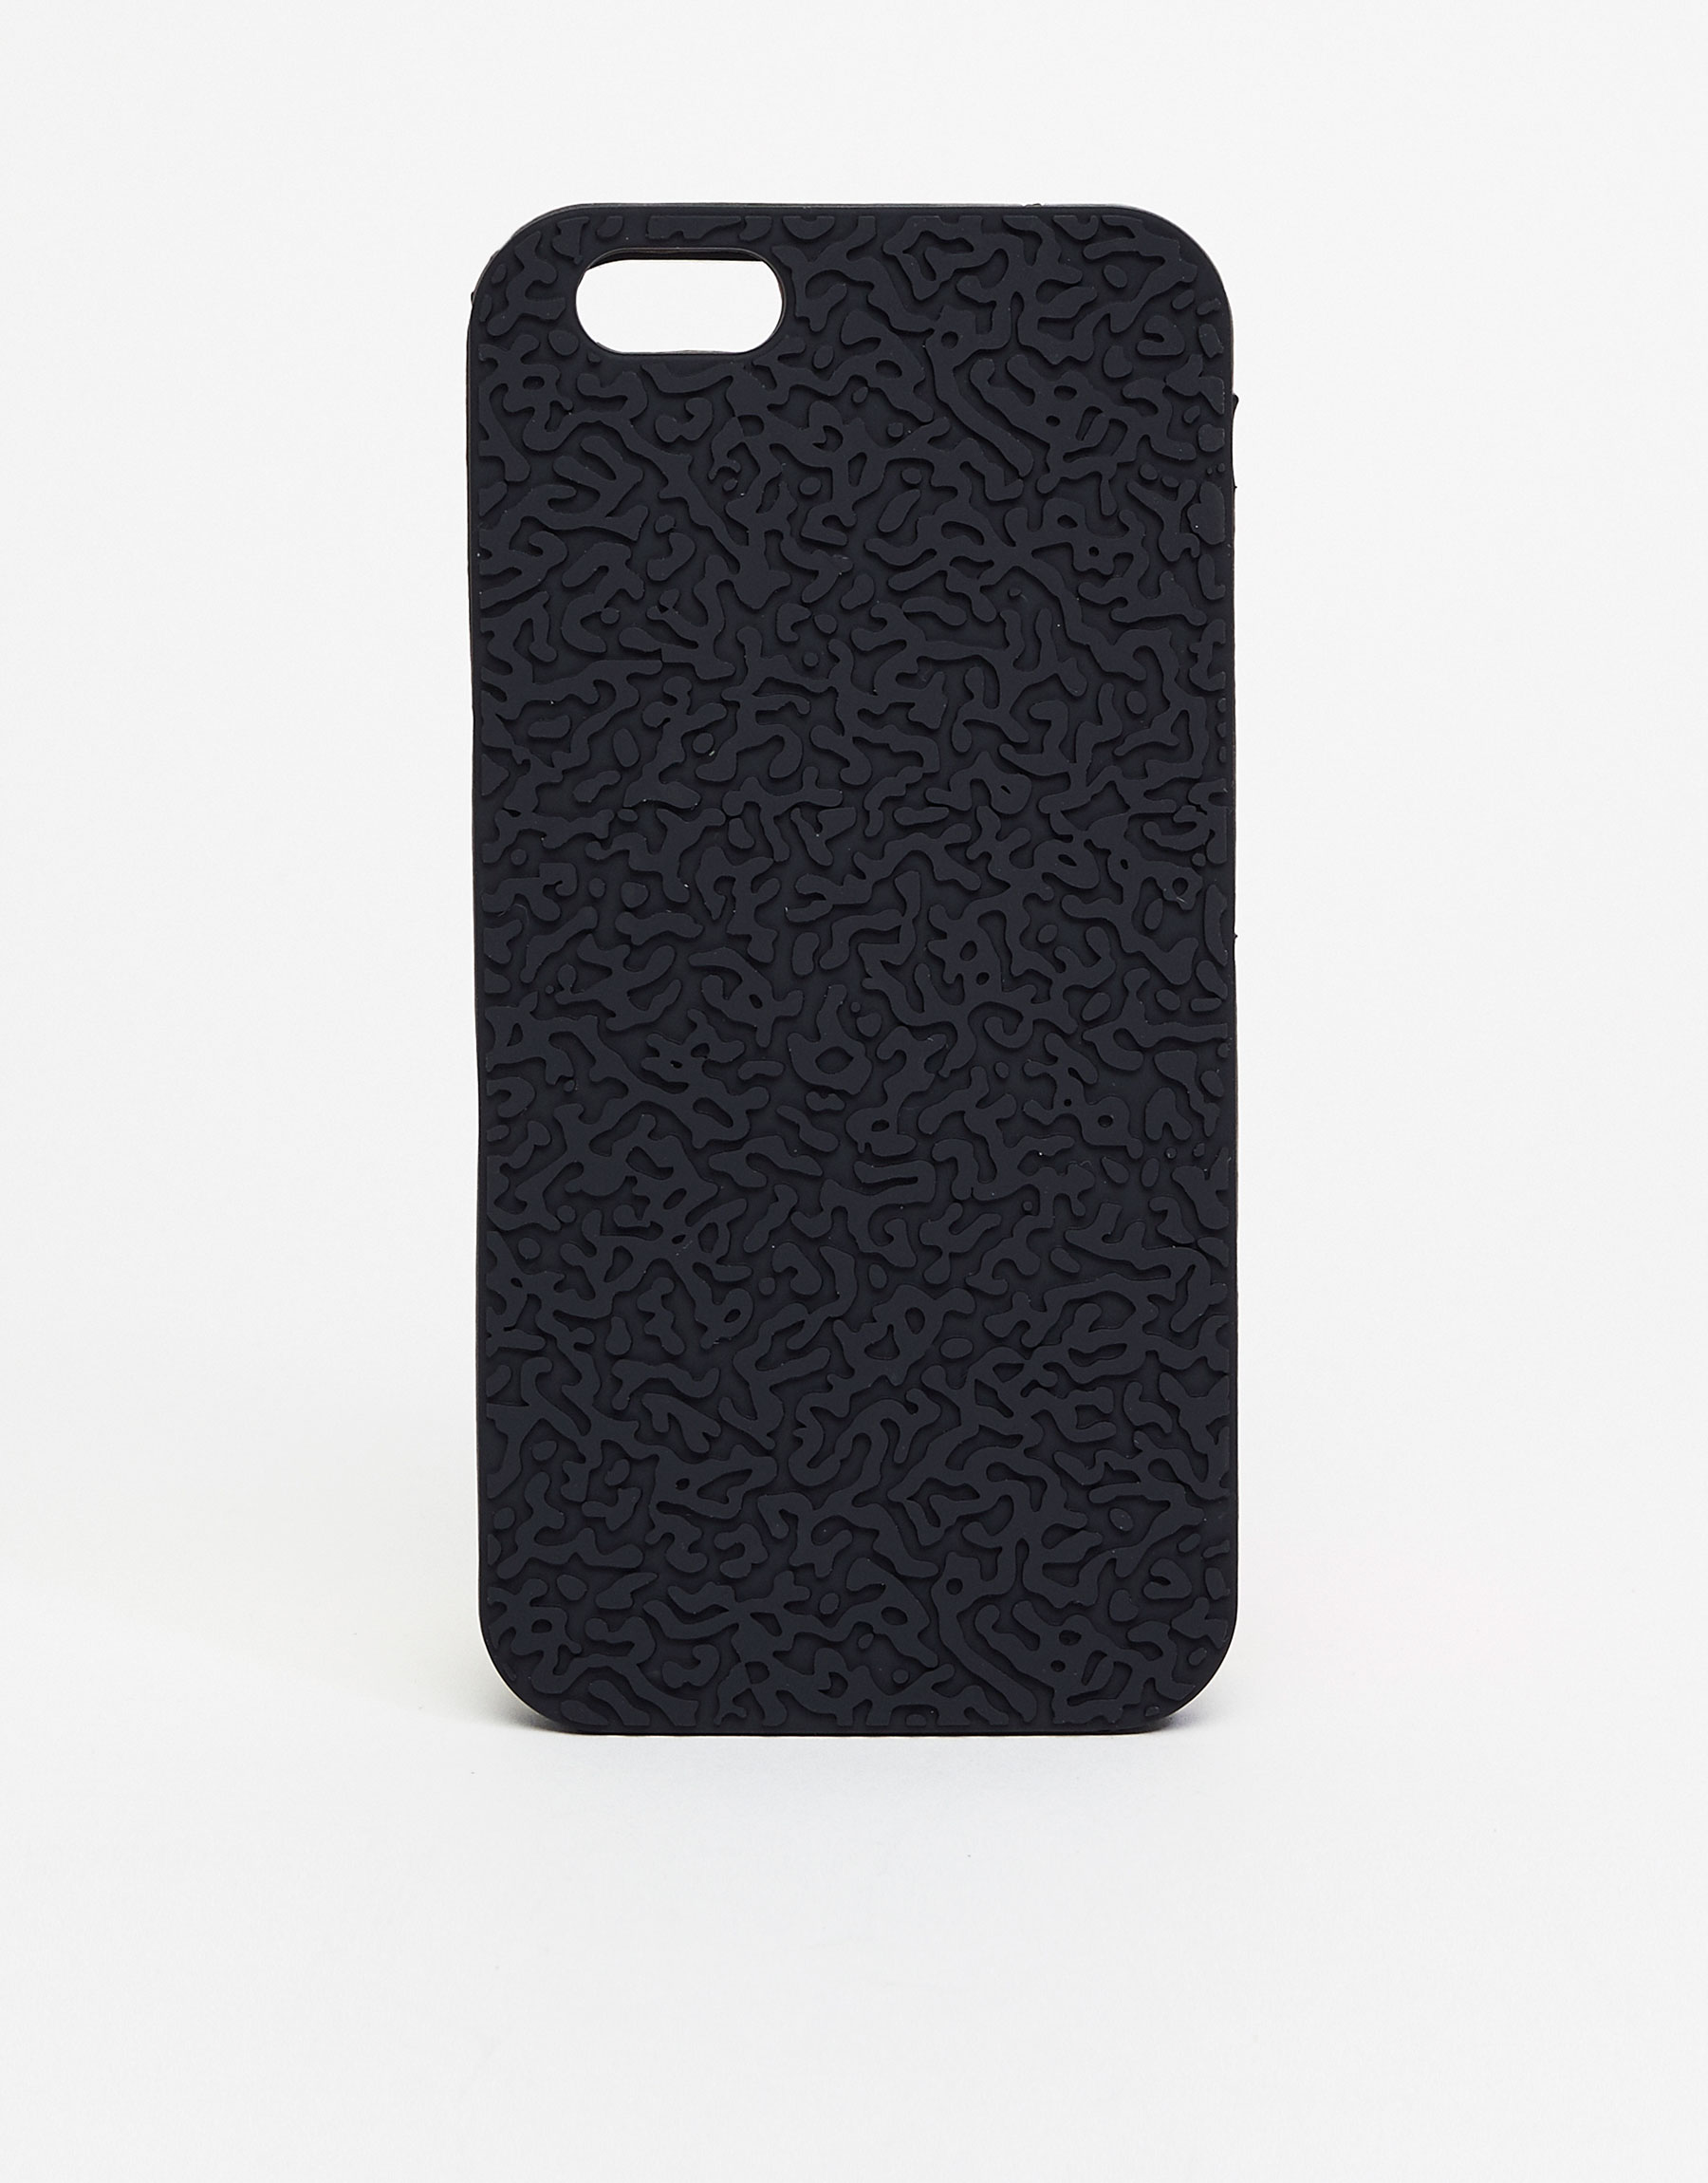 Rubber iPhone cover